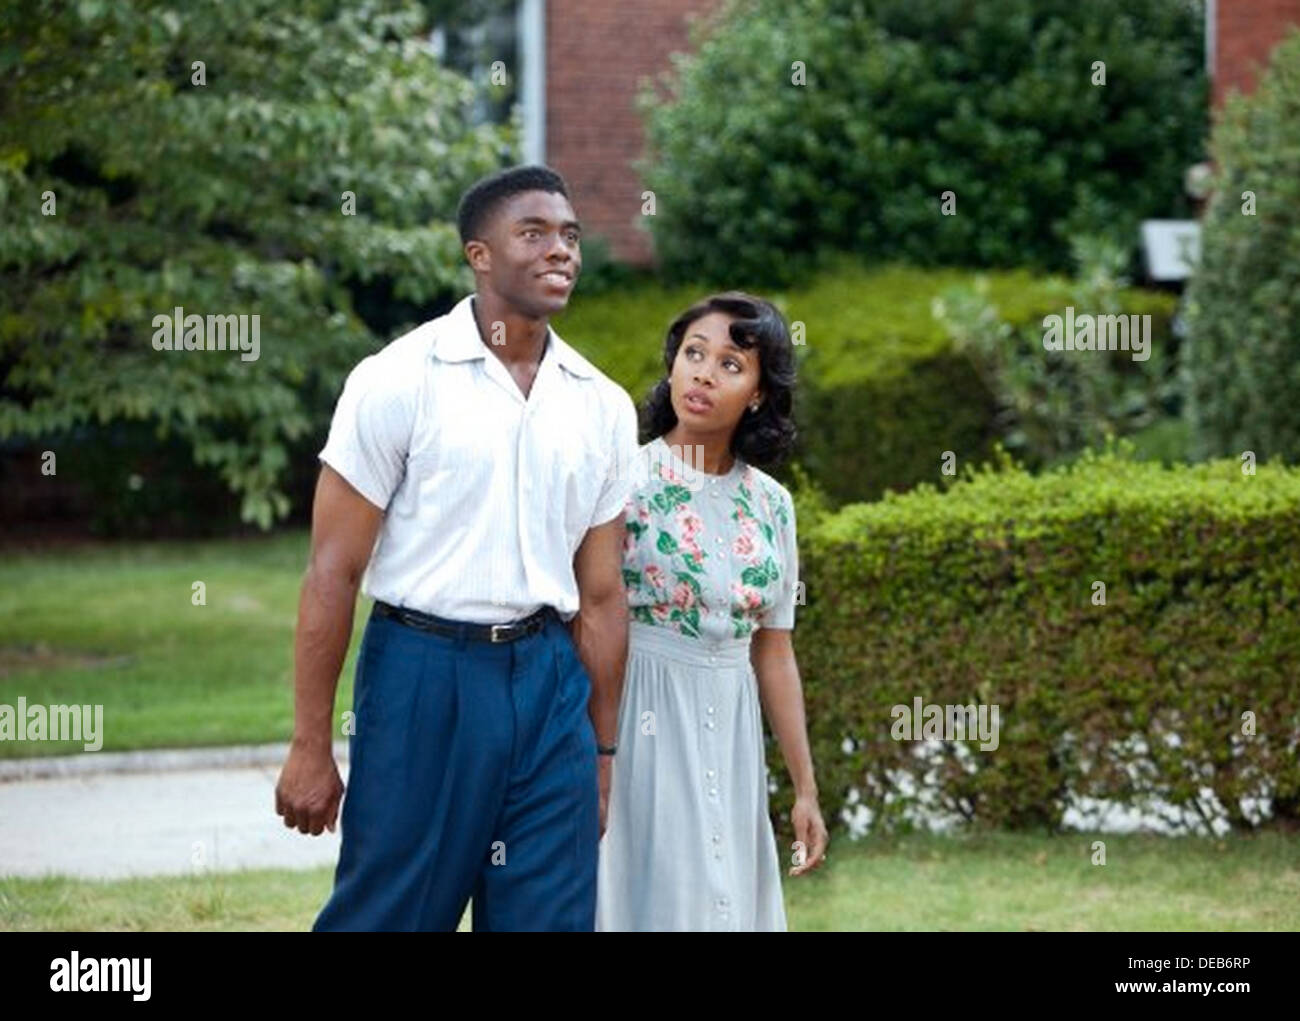 42  2013 Warner Bros film with Chadwick Boseman and Nicole Beharie - Stock Image